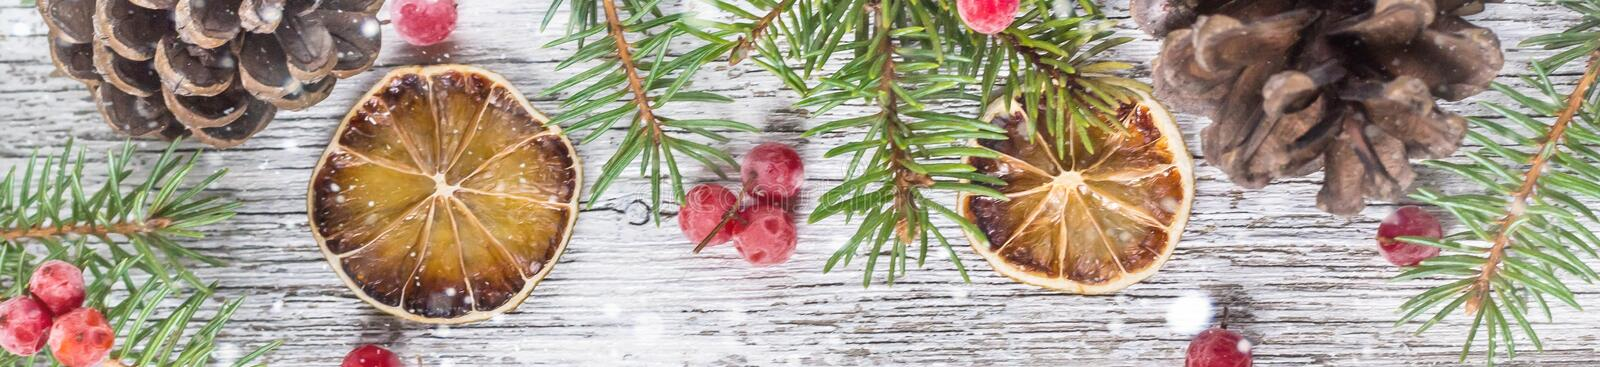 banner of Christmas branches with cones viburnum berries and dry lemon slice stock images